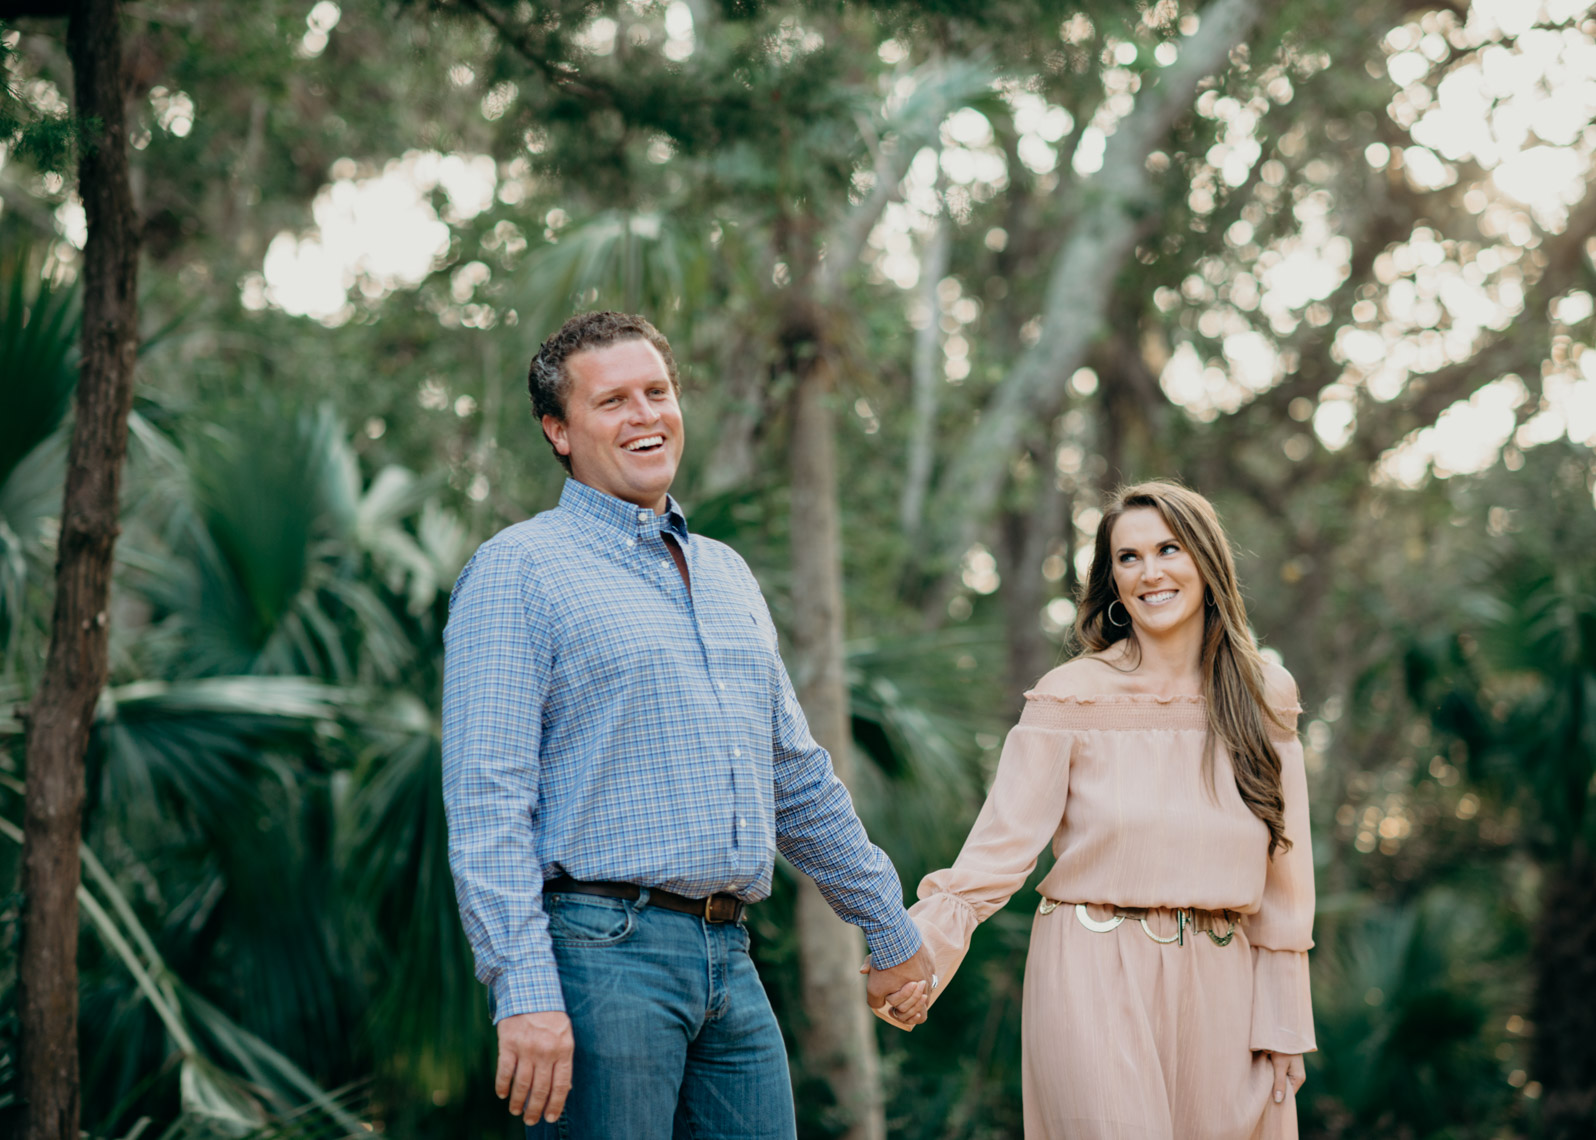 Family-Portrait-Photography-Amelia-Island-105